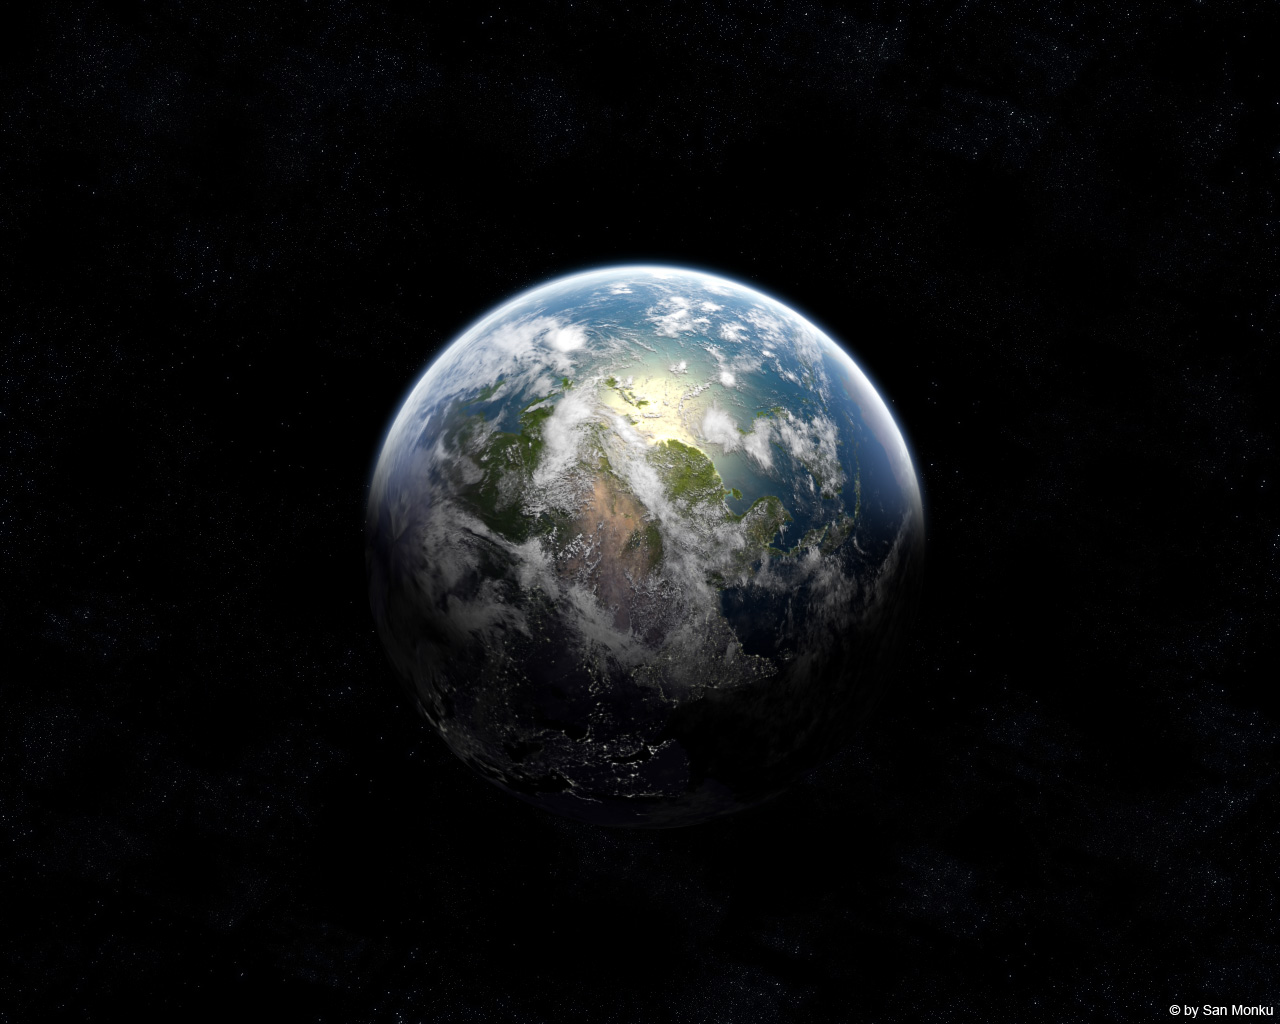 The GREY planet Truecolour image reveals what Earth